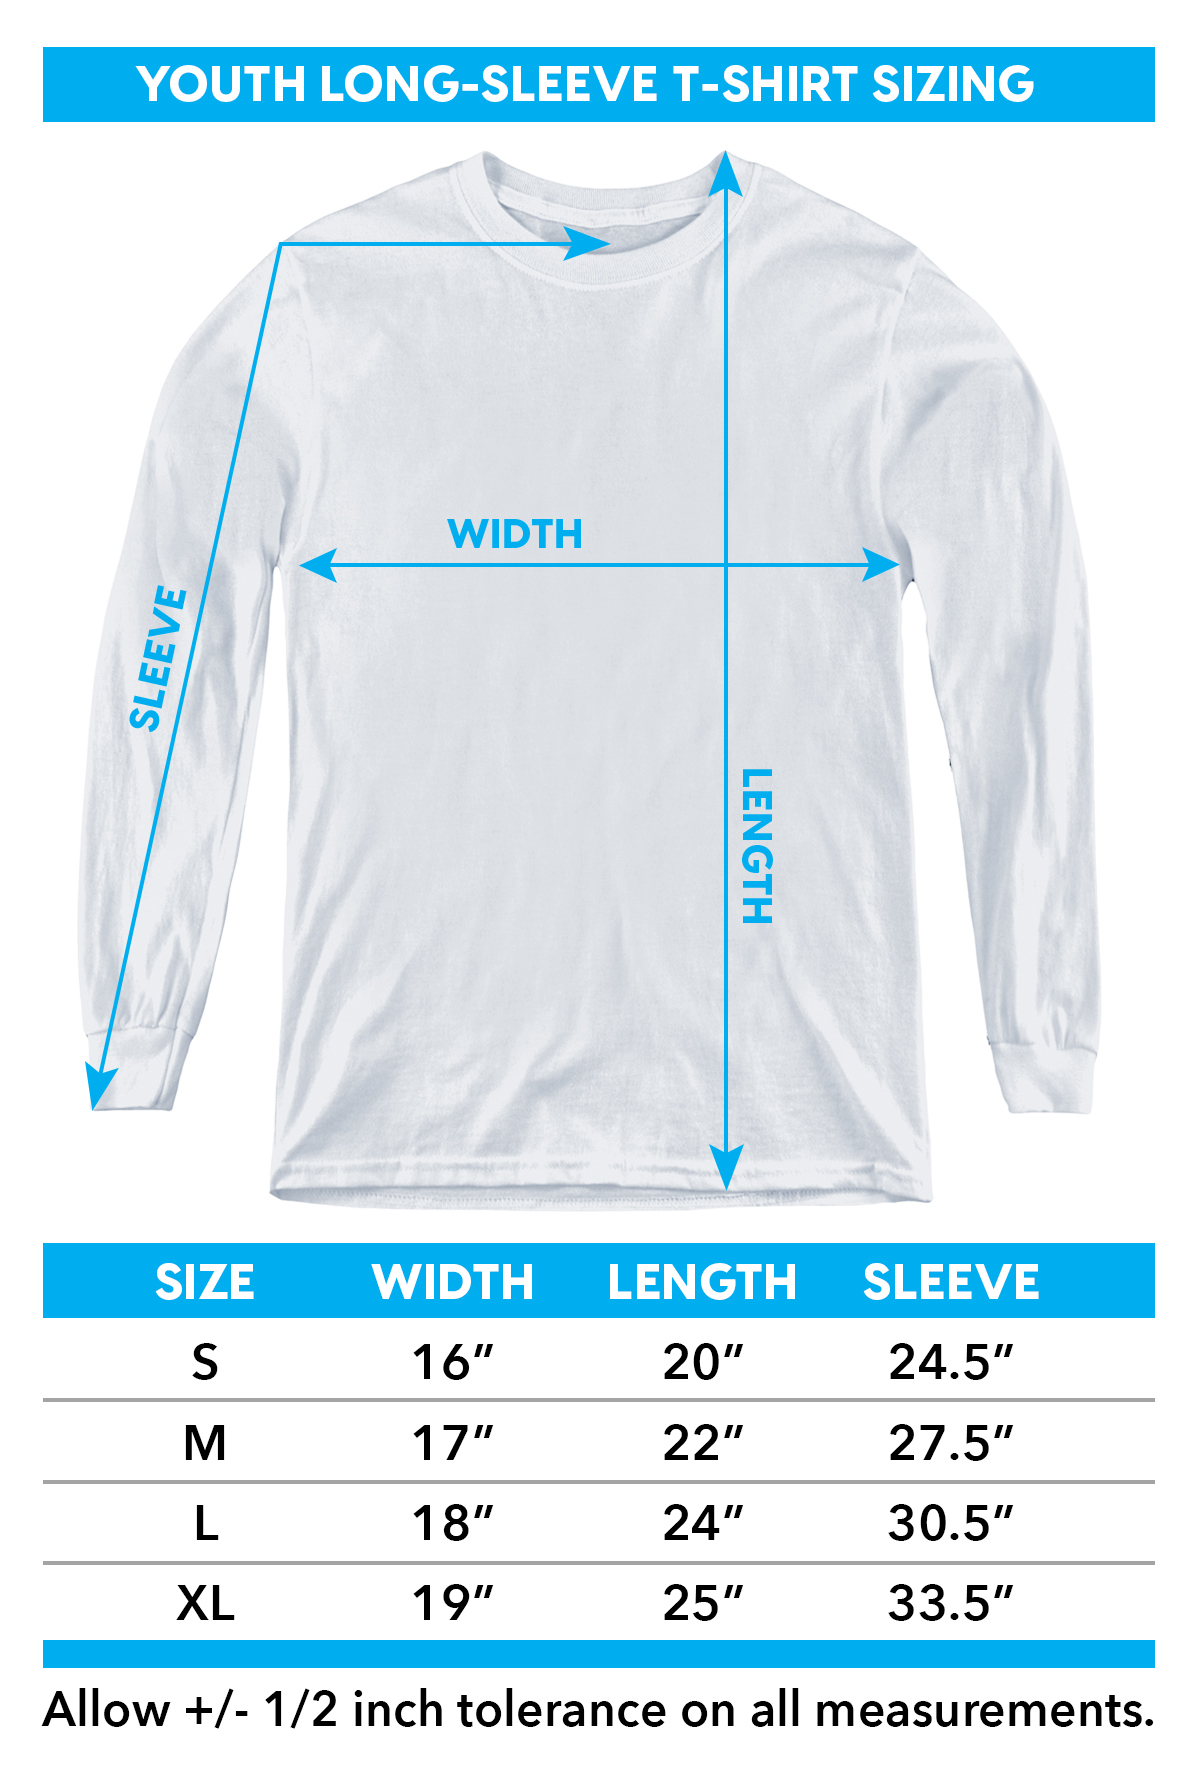 Sizing chart for Harbinger Youth Long Sleeve T-Shirt - Vintage  TRV-VAL159-YT